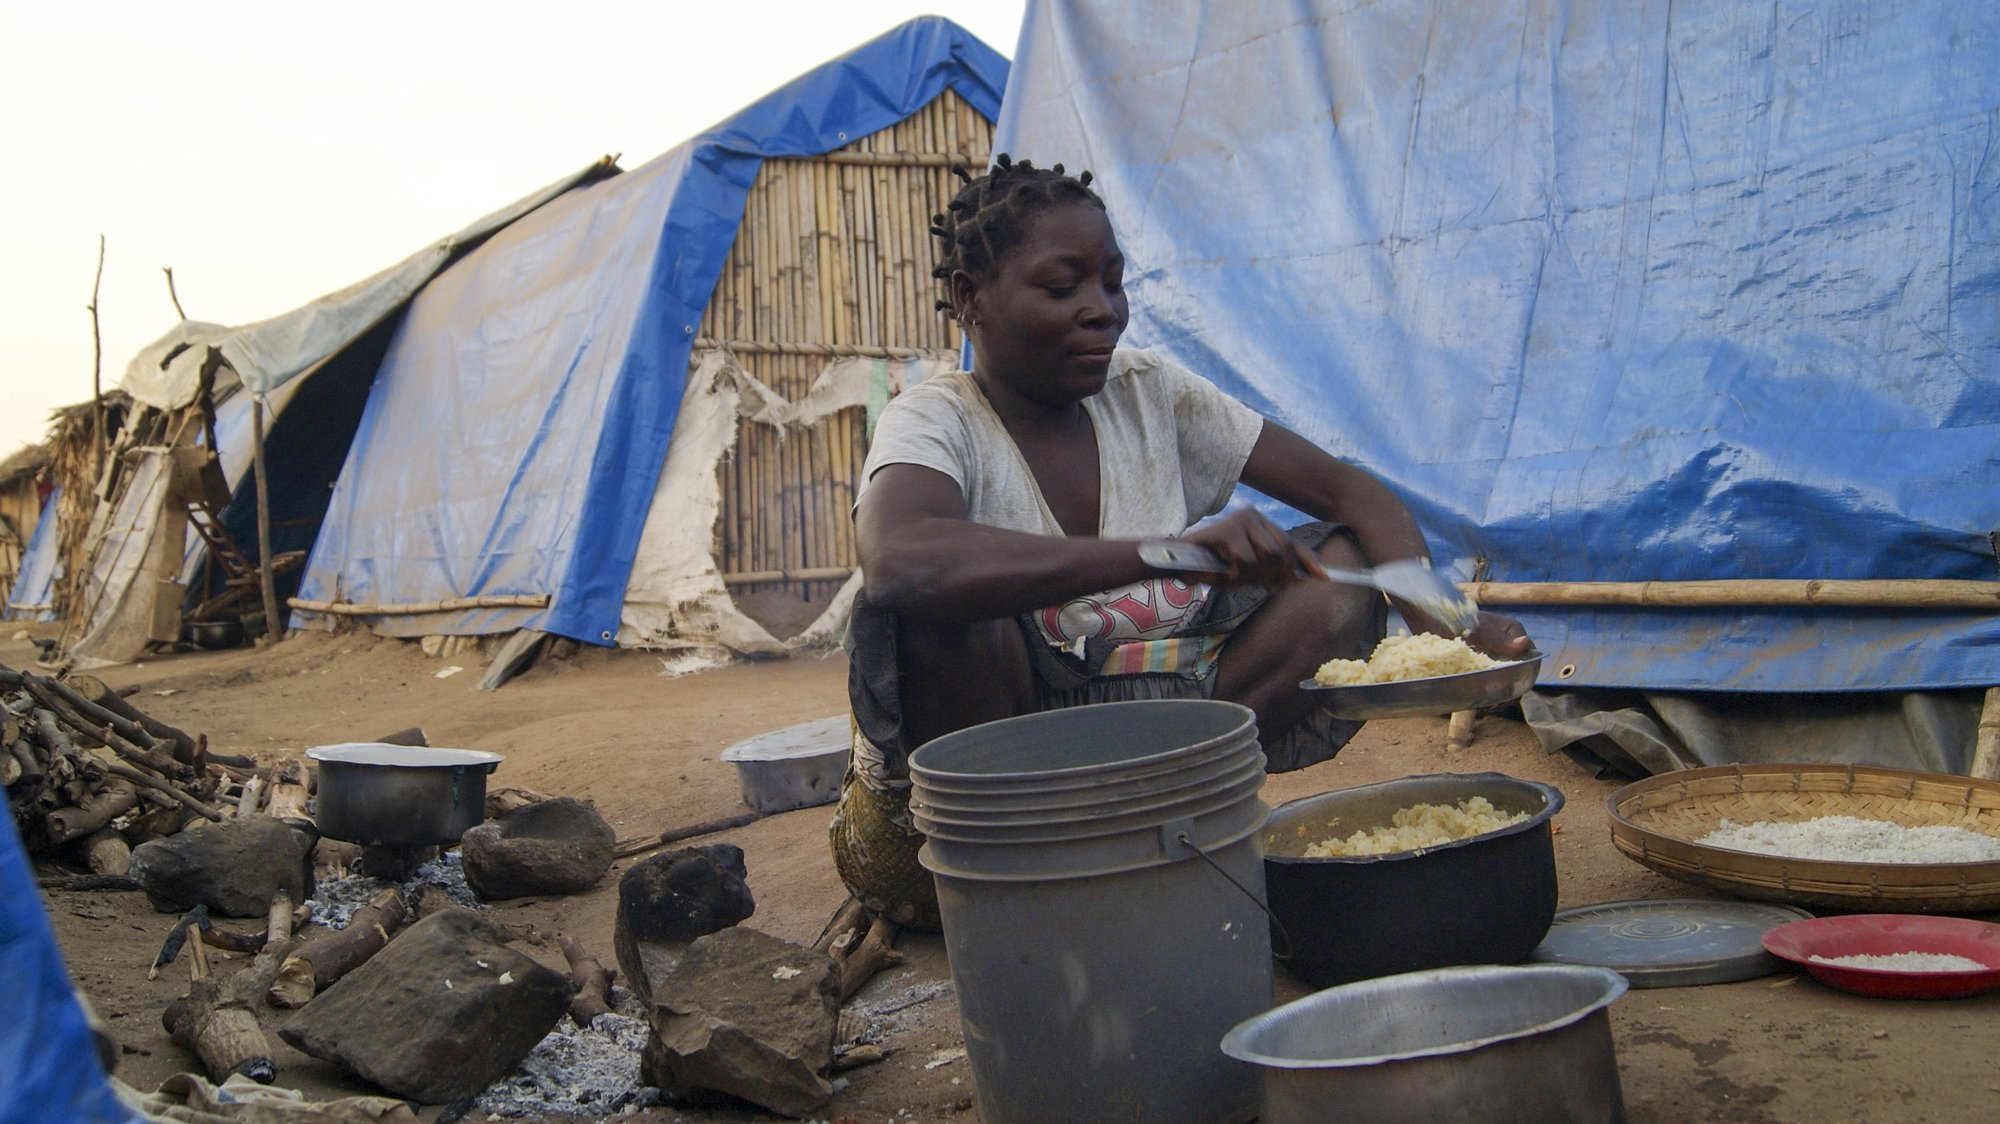 A woman prepares a meal in one of the shelter camps in Metuge, a space housing displaced people fleeing armed violence in northern Mozambique. Cabo Delgado, Mozambique, 16 August 2021 (issue on 17 August 2021). Following the attacks, which have terrorized Cabo Delgado province since 2017, there are more than 3,100 deaths, according to the ACLED conflict registration project, and more than 817,000 displaced people, according to Mozambican authorities. LUISA NHANTUMBO/LUSA